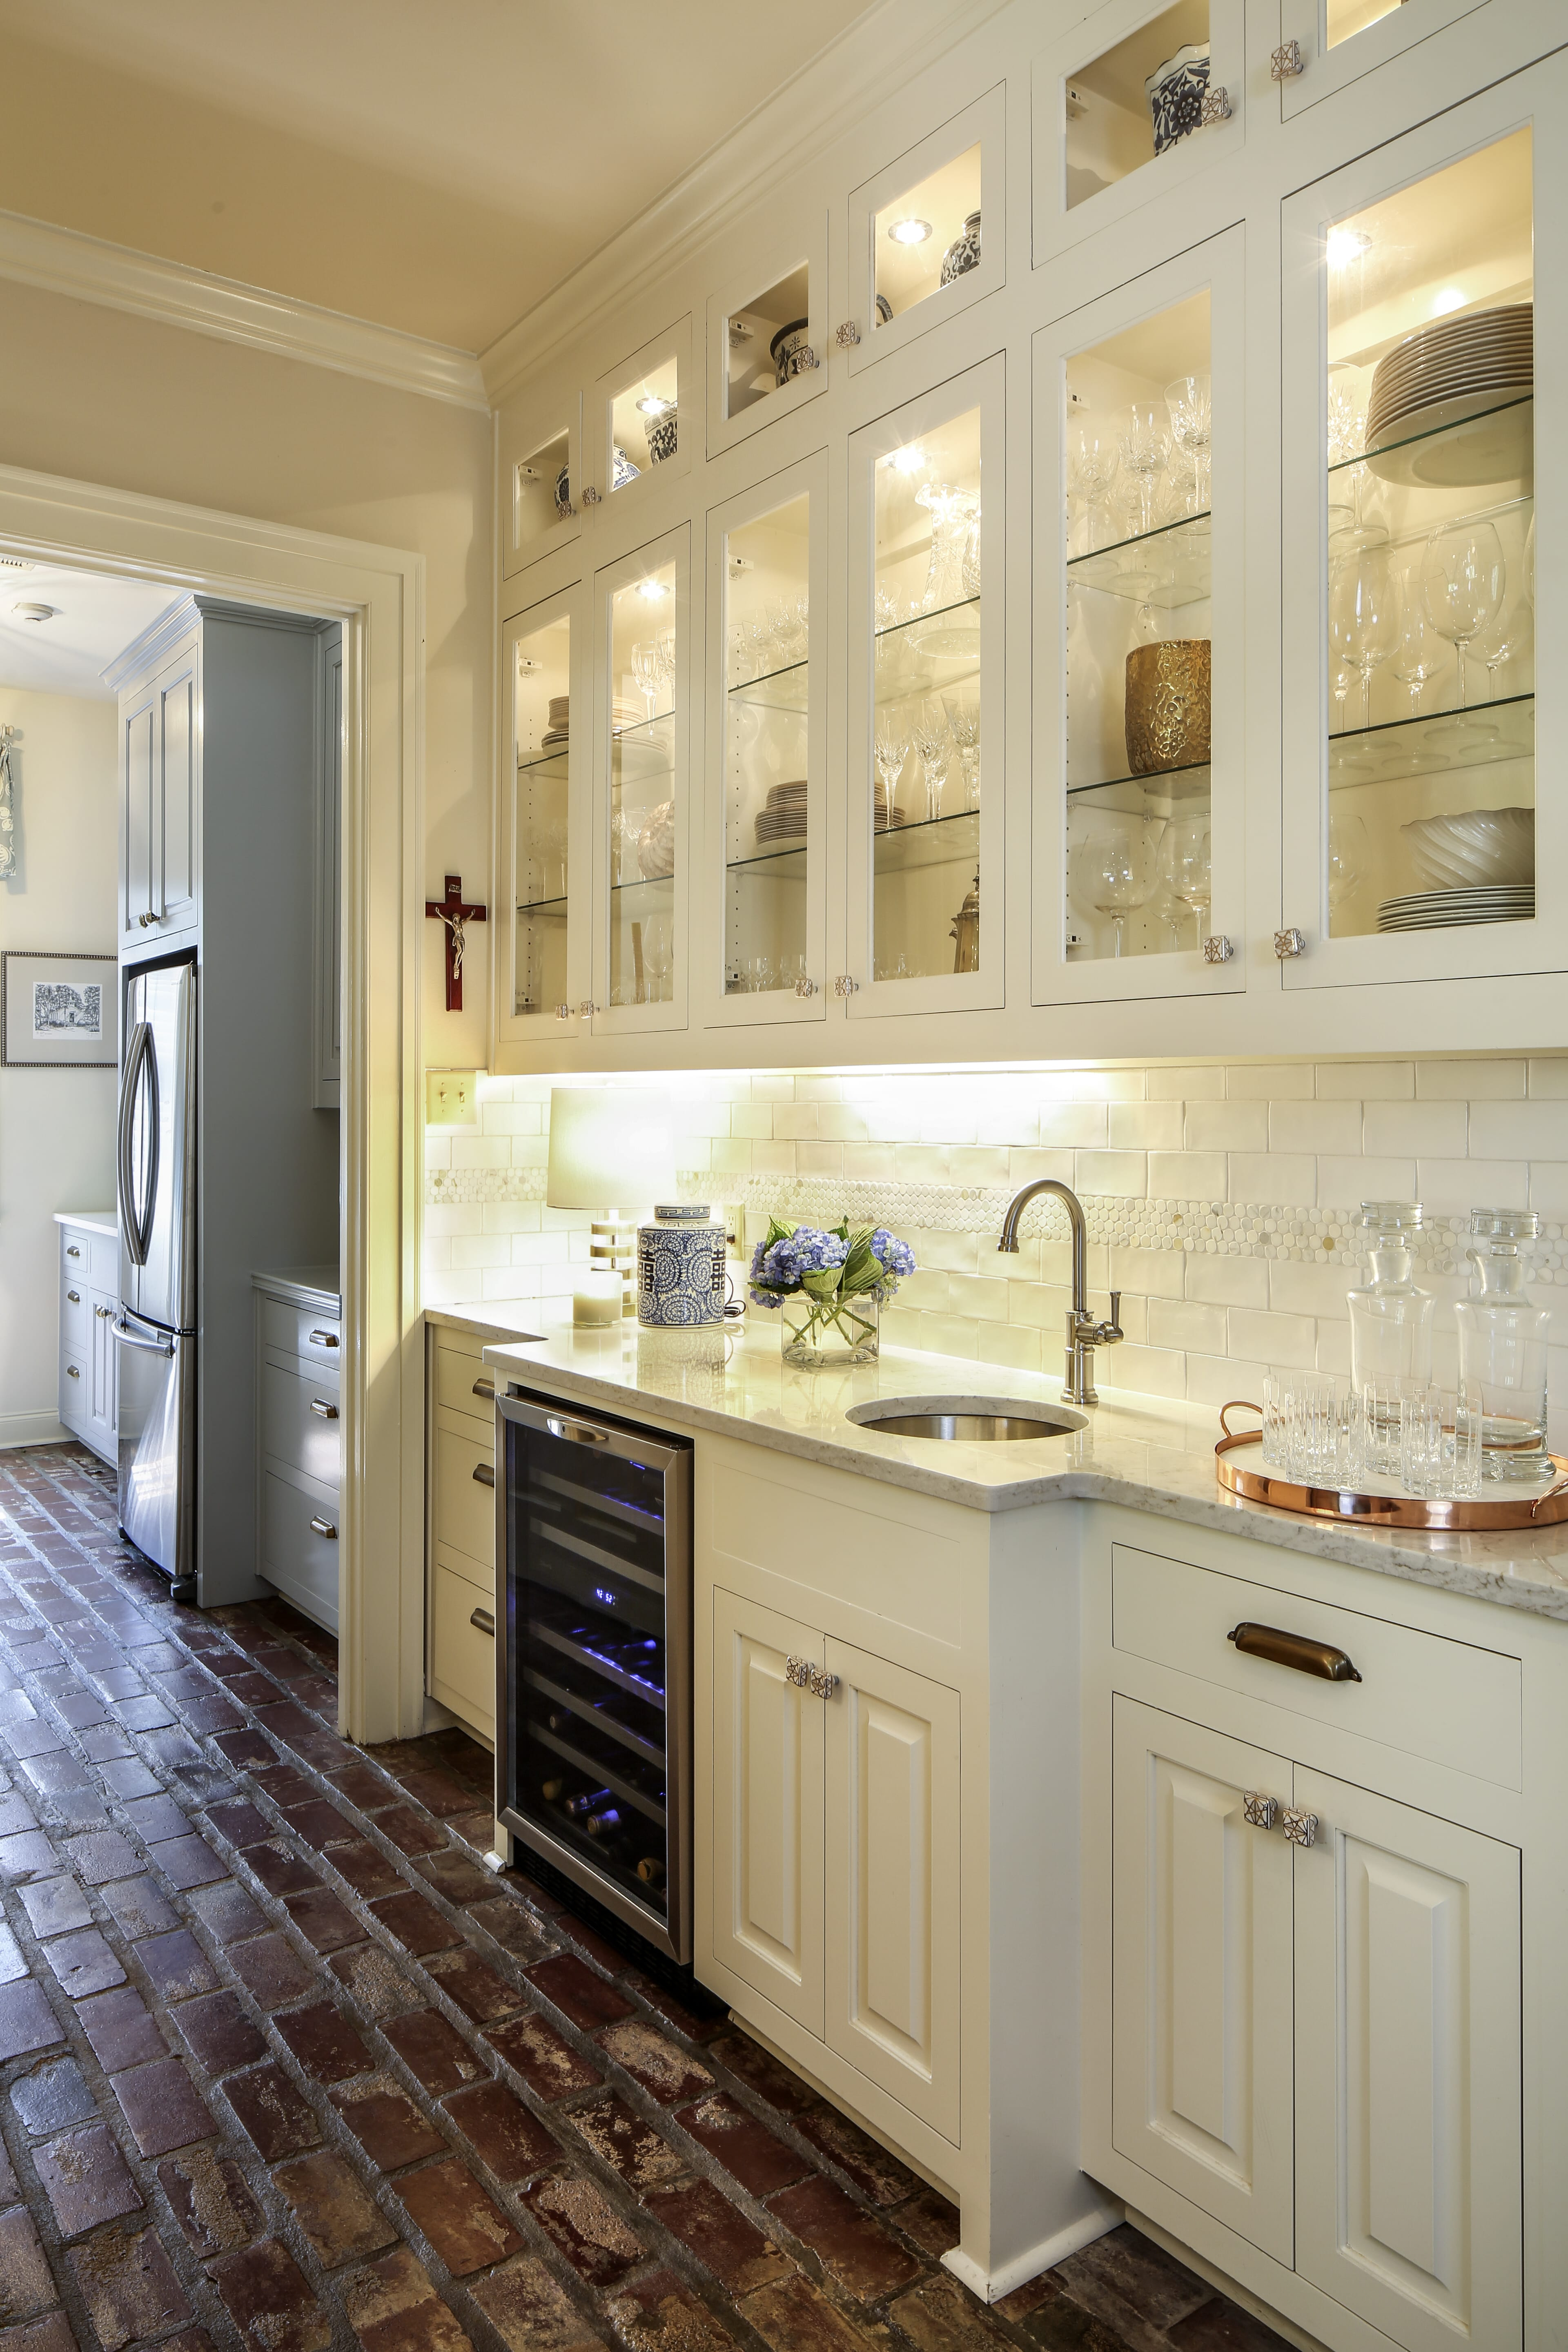 Kakin Todd And Her Acadian House Colleague Adele Merchant Renovated Toddu0027s  Parentsu0027 Kitchen To Include New Glass Front Upper Cabinets That Create A  Sense Of ...